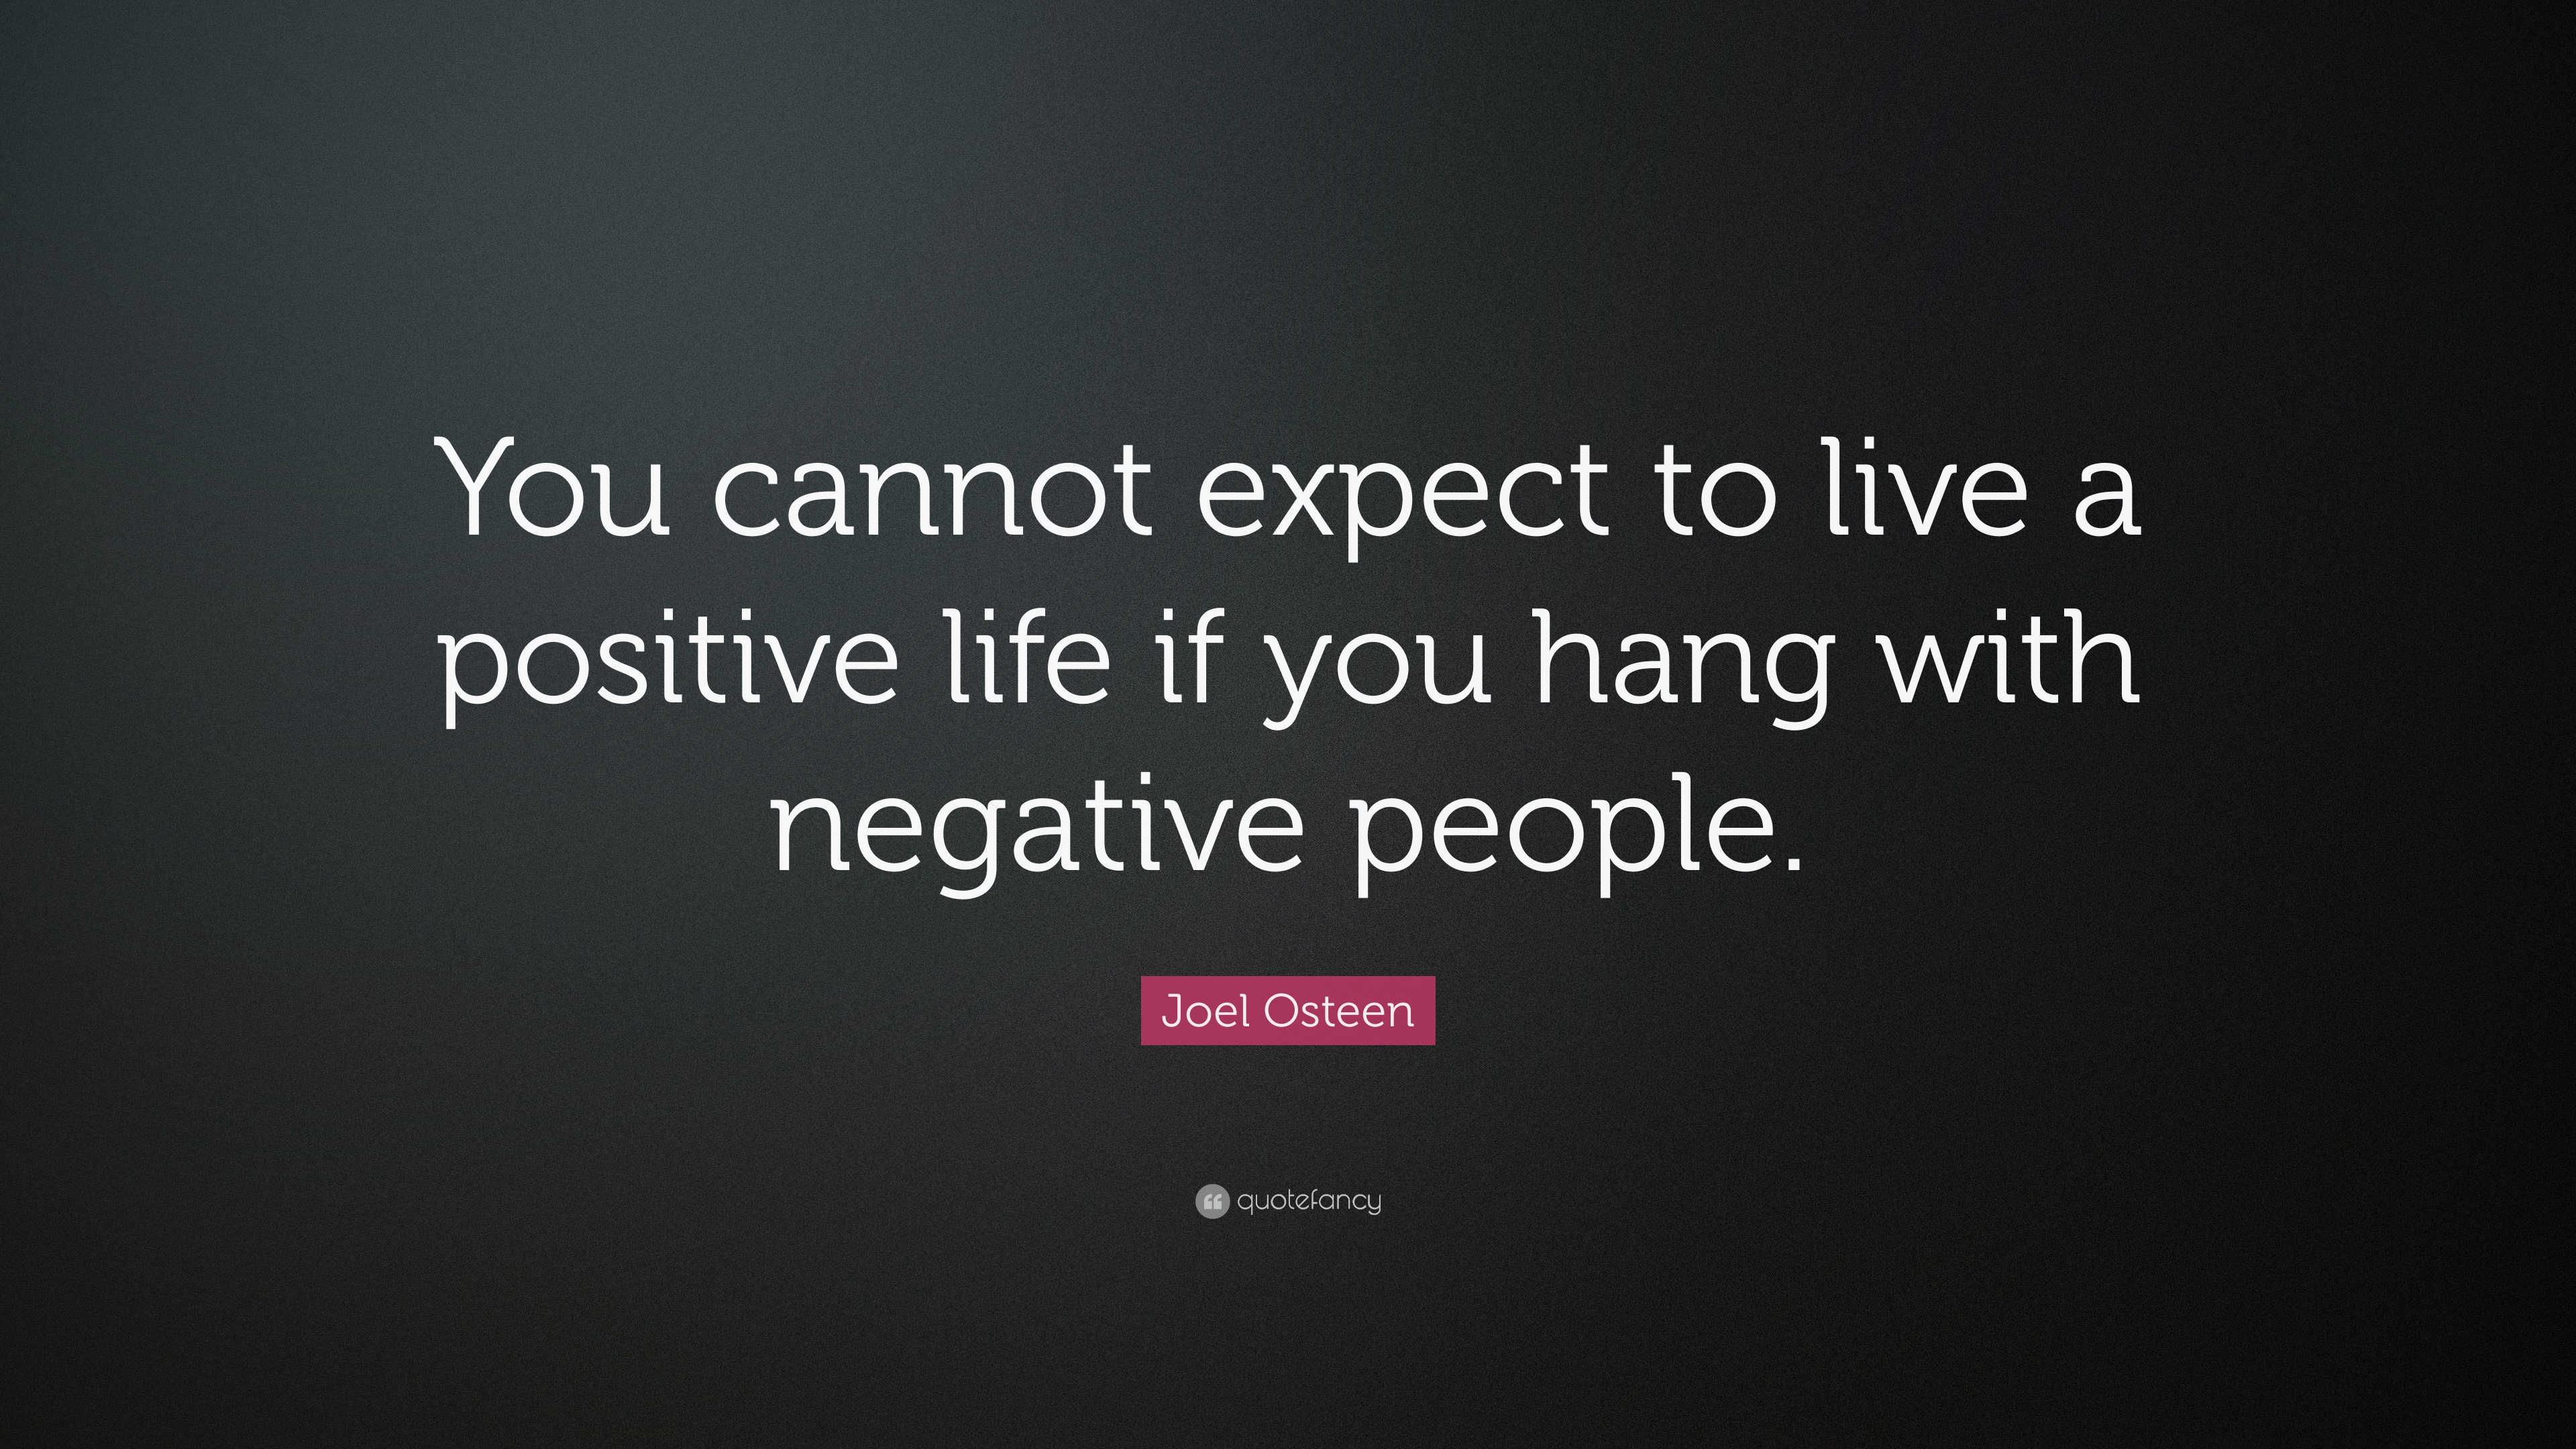 Exceptionnel Joel Osteen Quote: U201cYou Cannot Expect To Live A Positive Life If You Hang